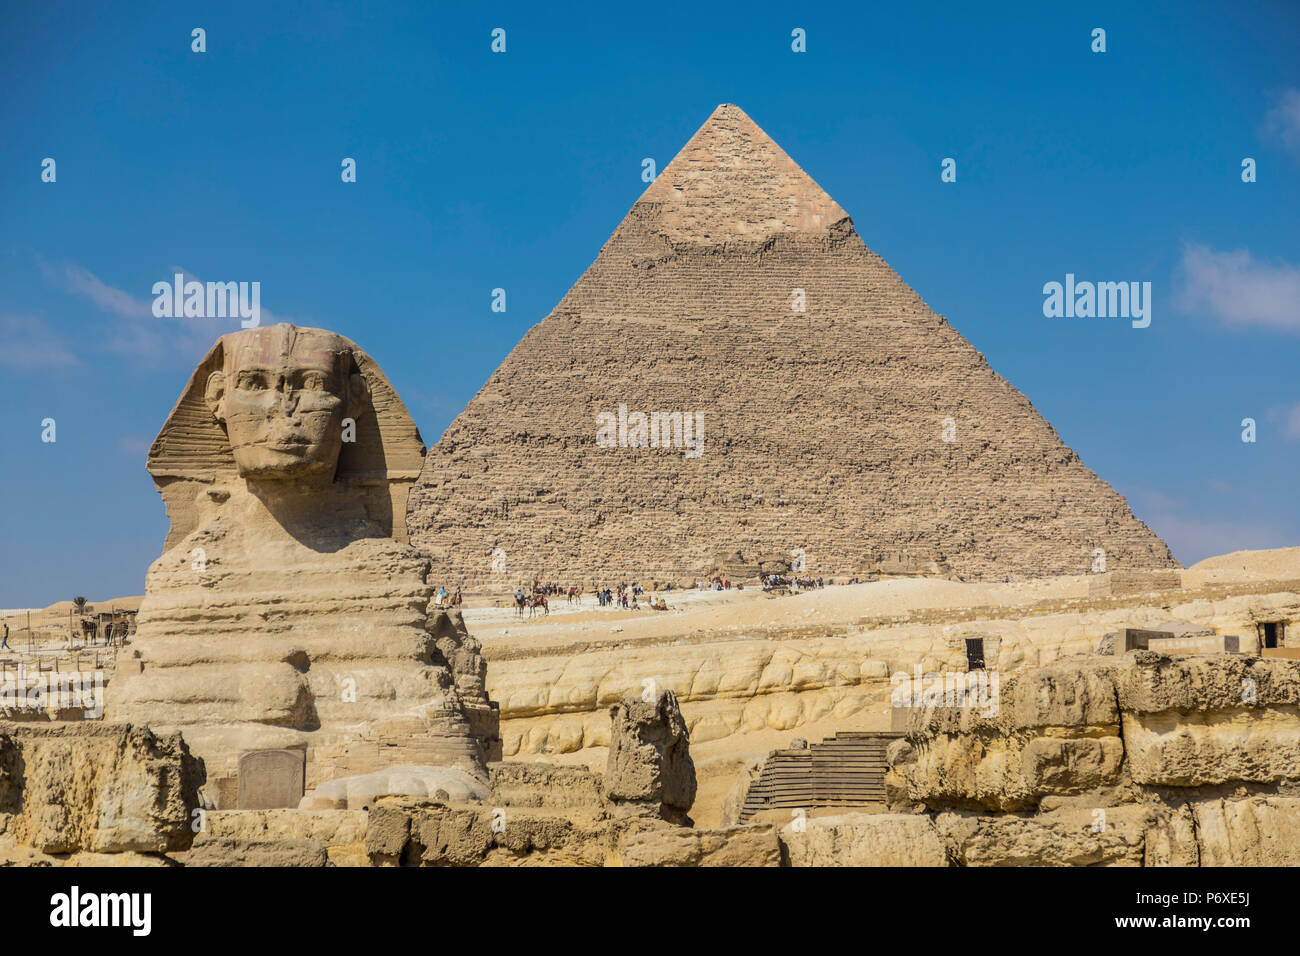 Sphinx and Pyramid of Khafre (Chephren), Pyramids of Giza, Giza, Cairo, Egypt - Stock Image